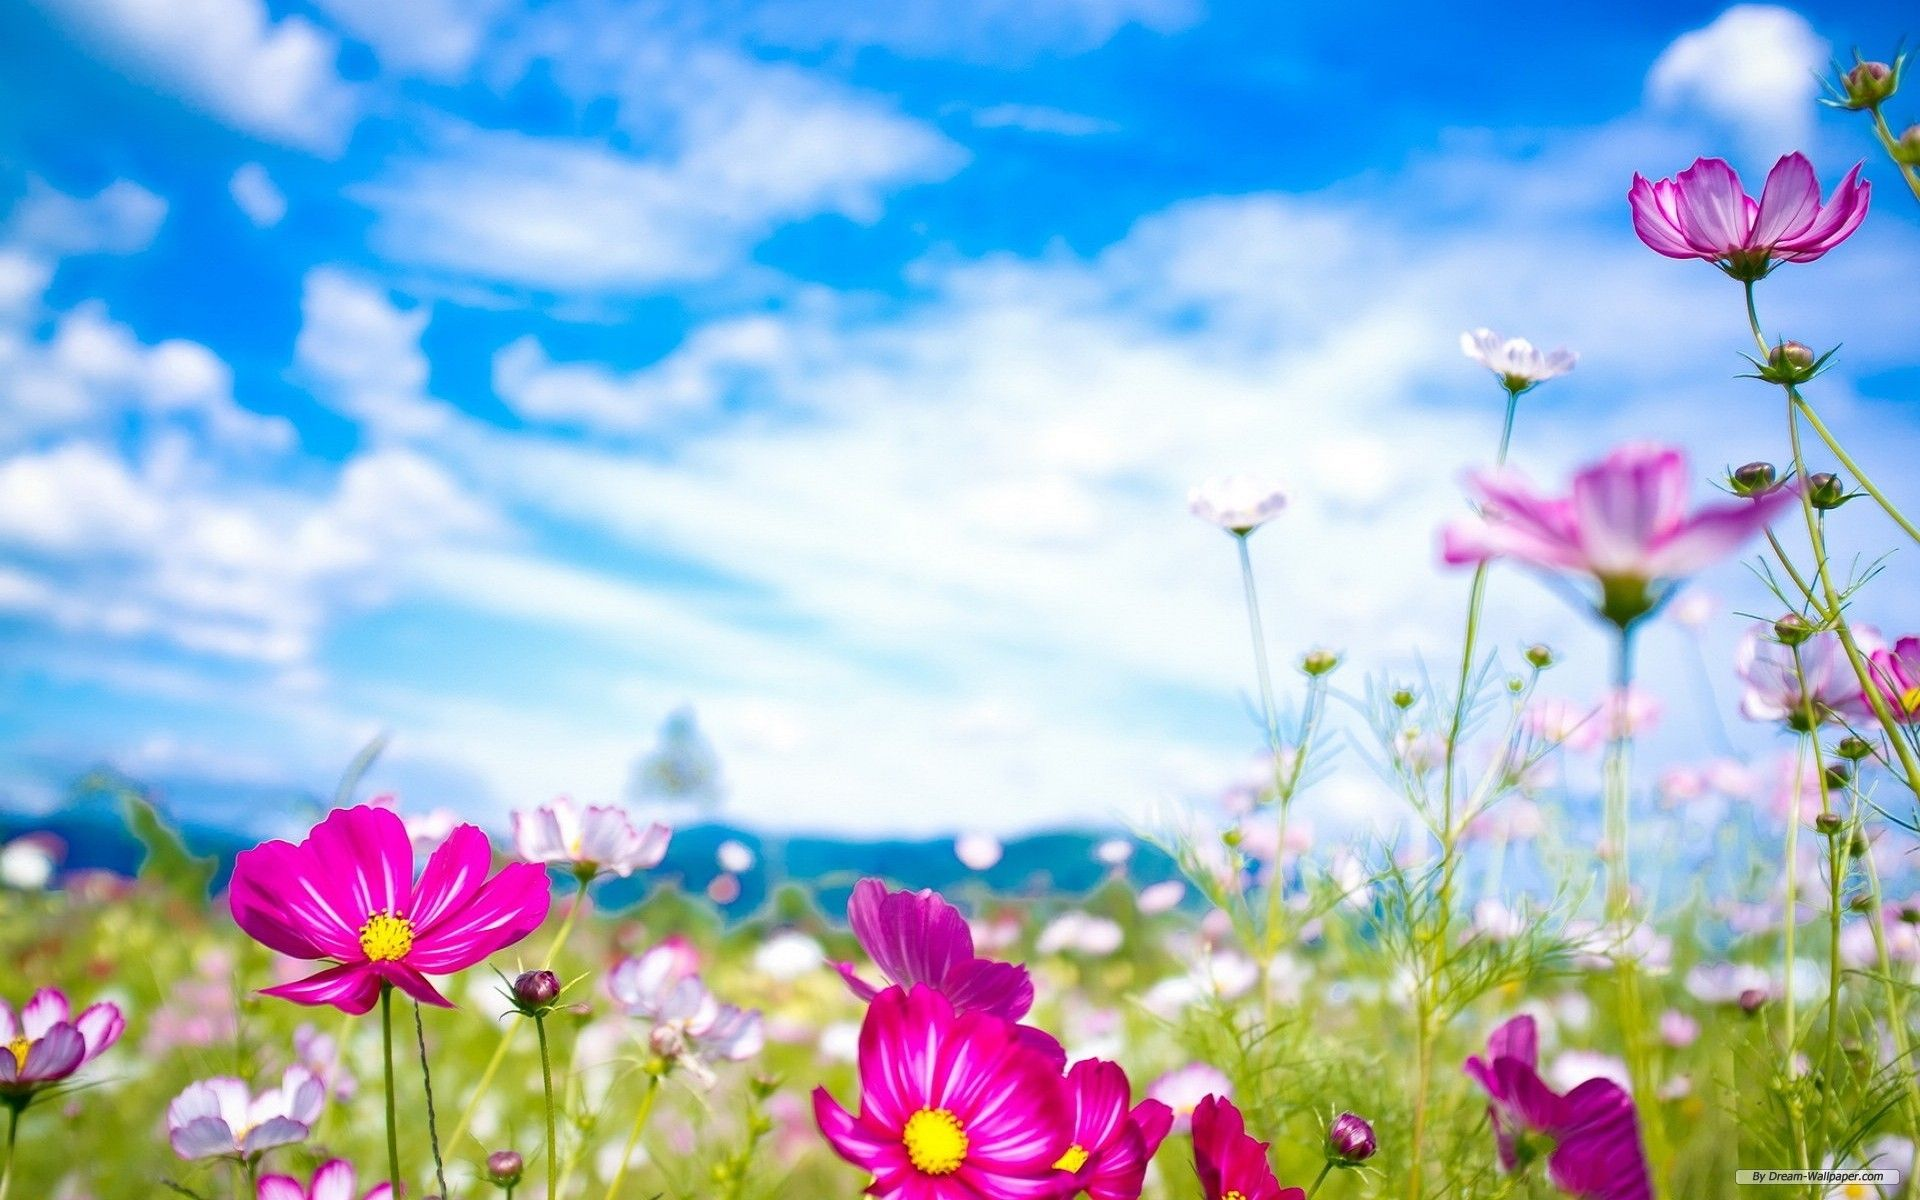 For Your Desktop: Spring Flowers Wallpapers, 43 Top Quality Spring ...